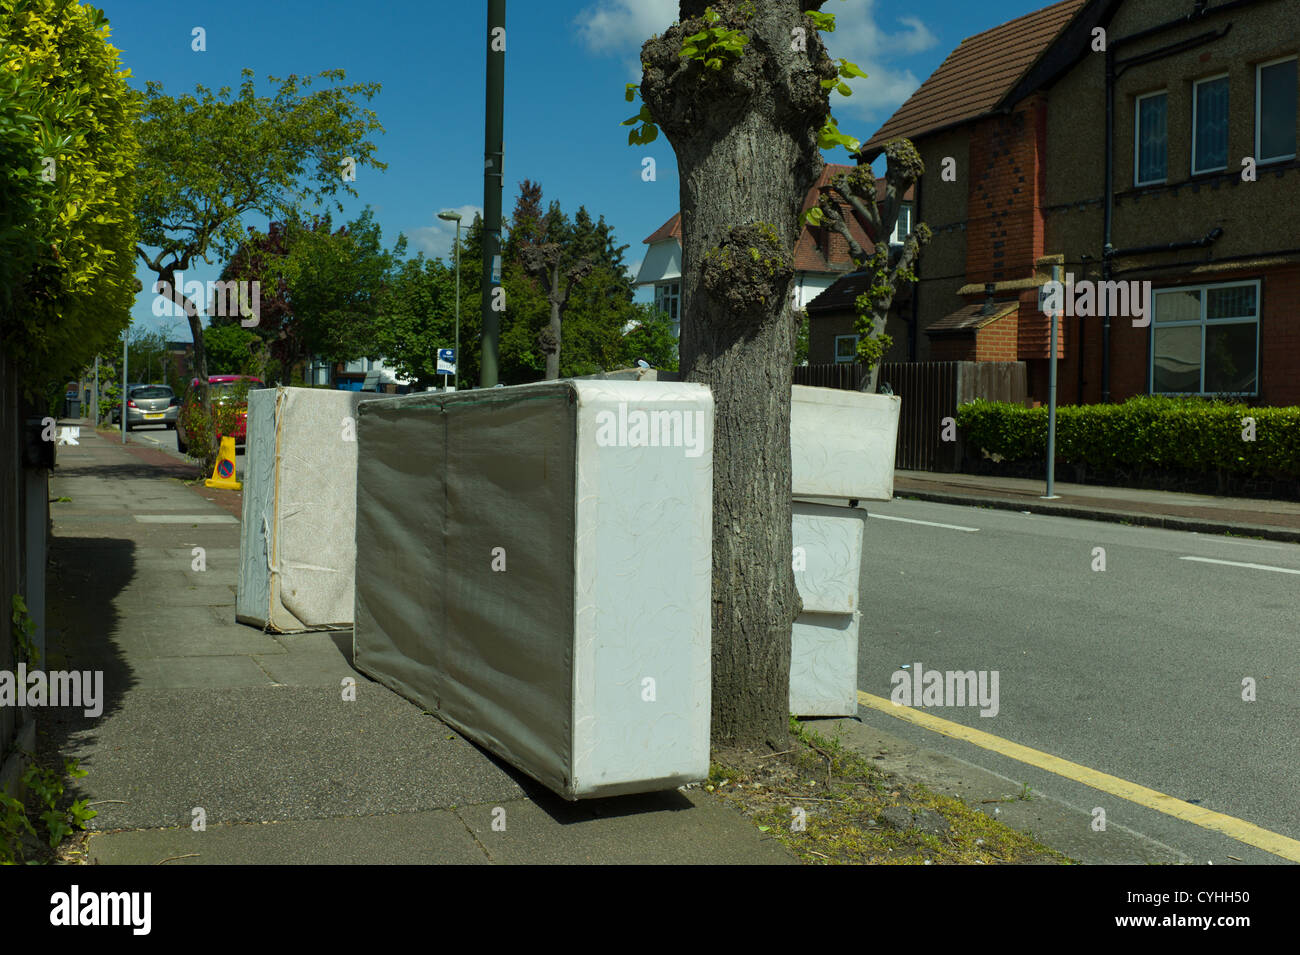 Fly tipping of mattresses and beds in street in Brent Cross Golders Green, London - Stock Image